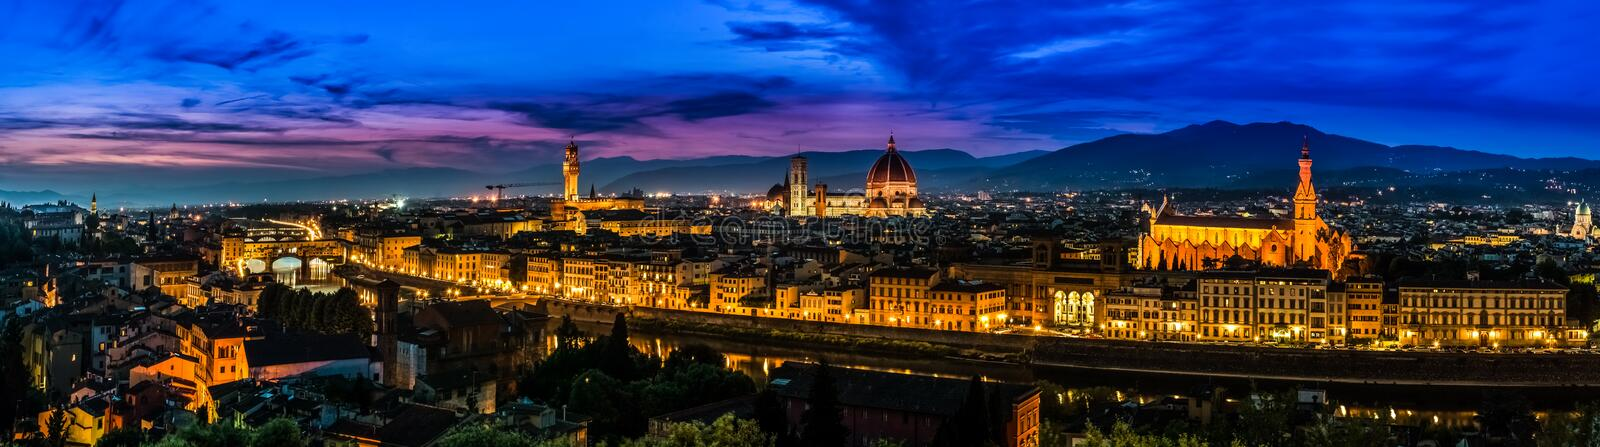 Florence, Italy - skyline view at twilight stock photos